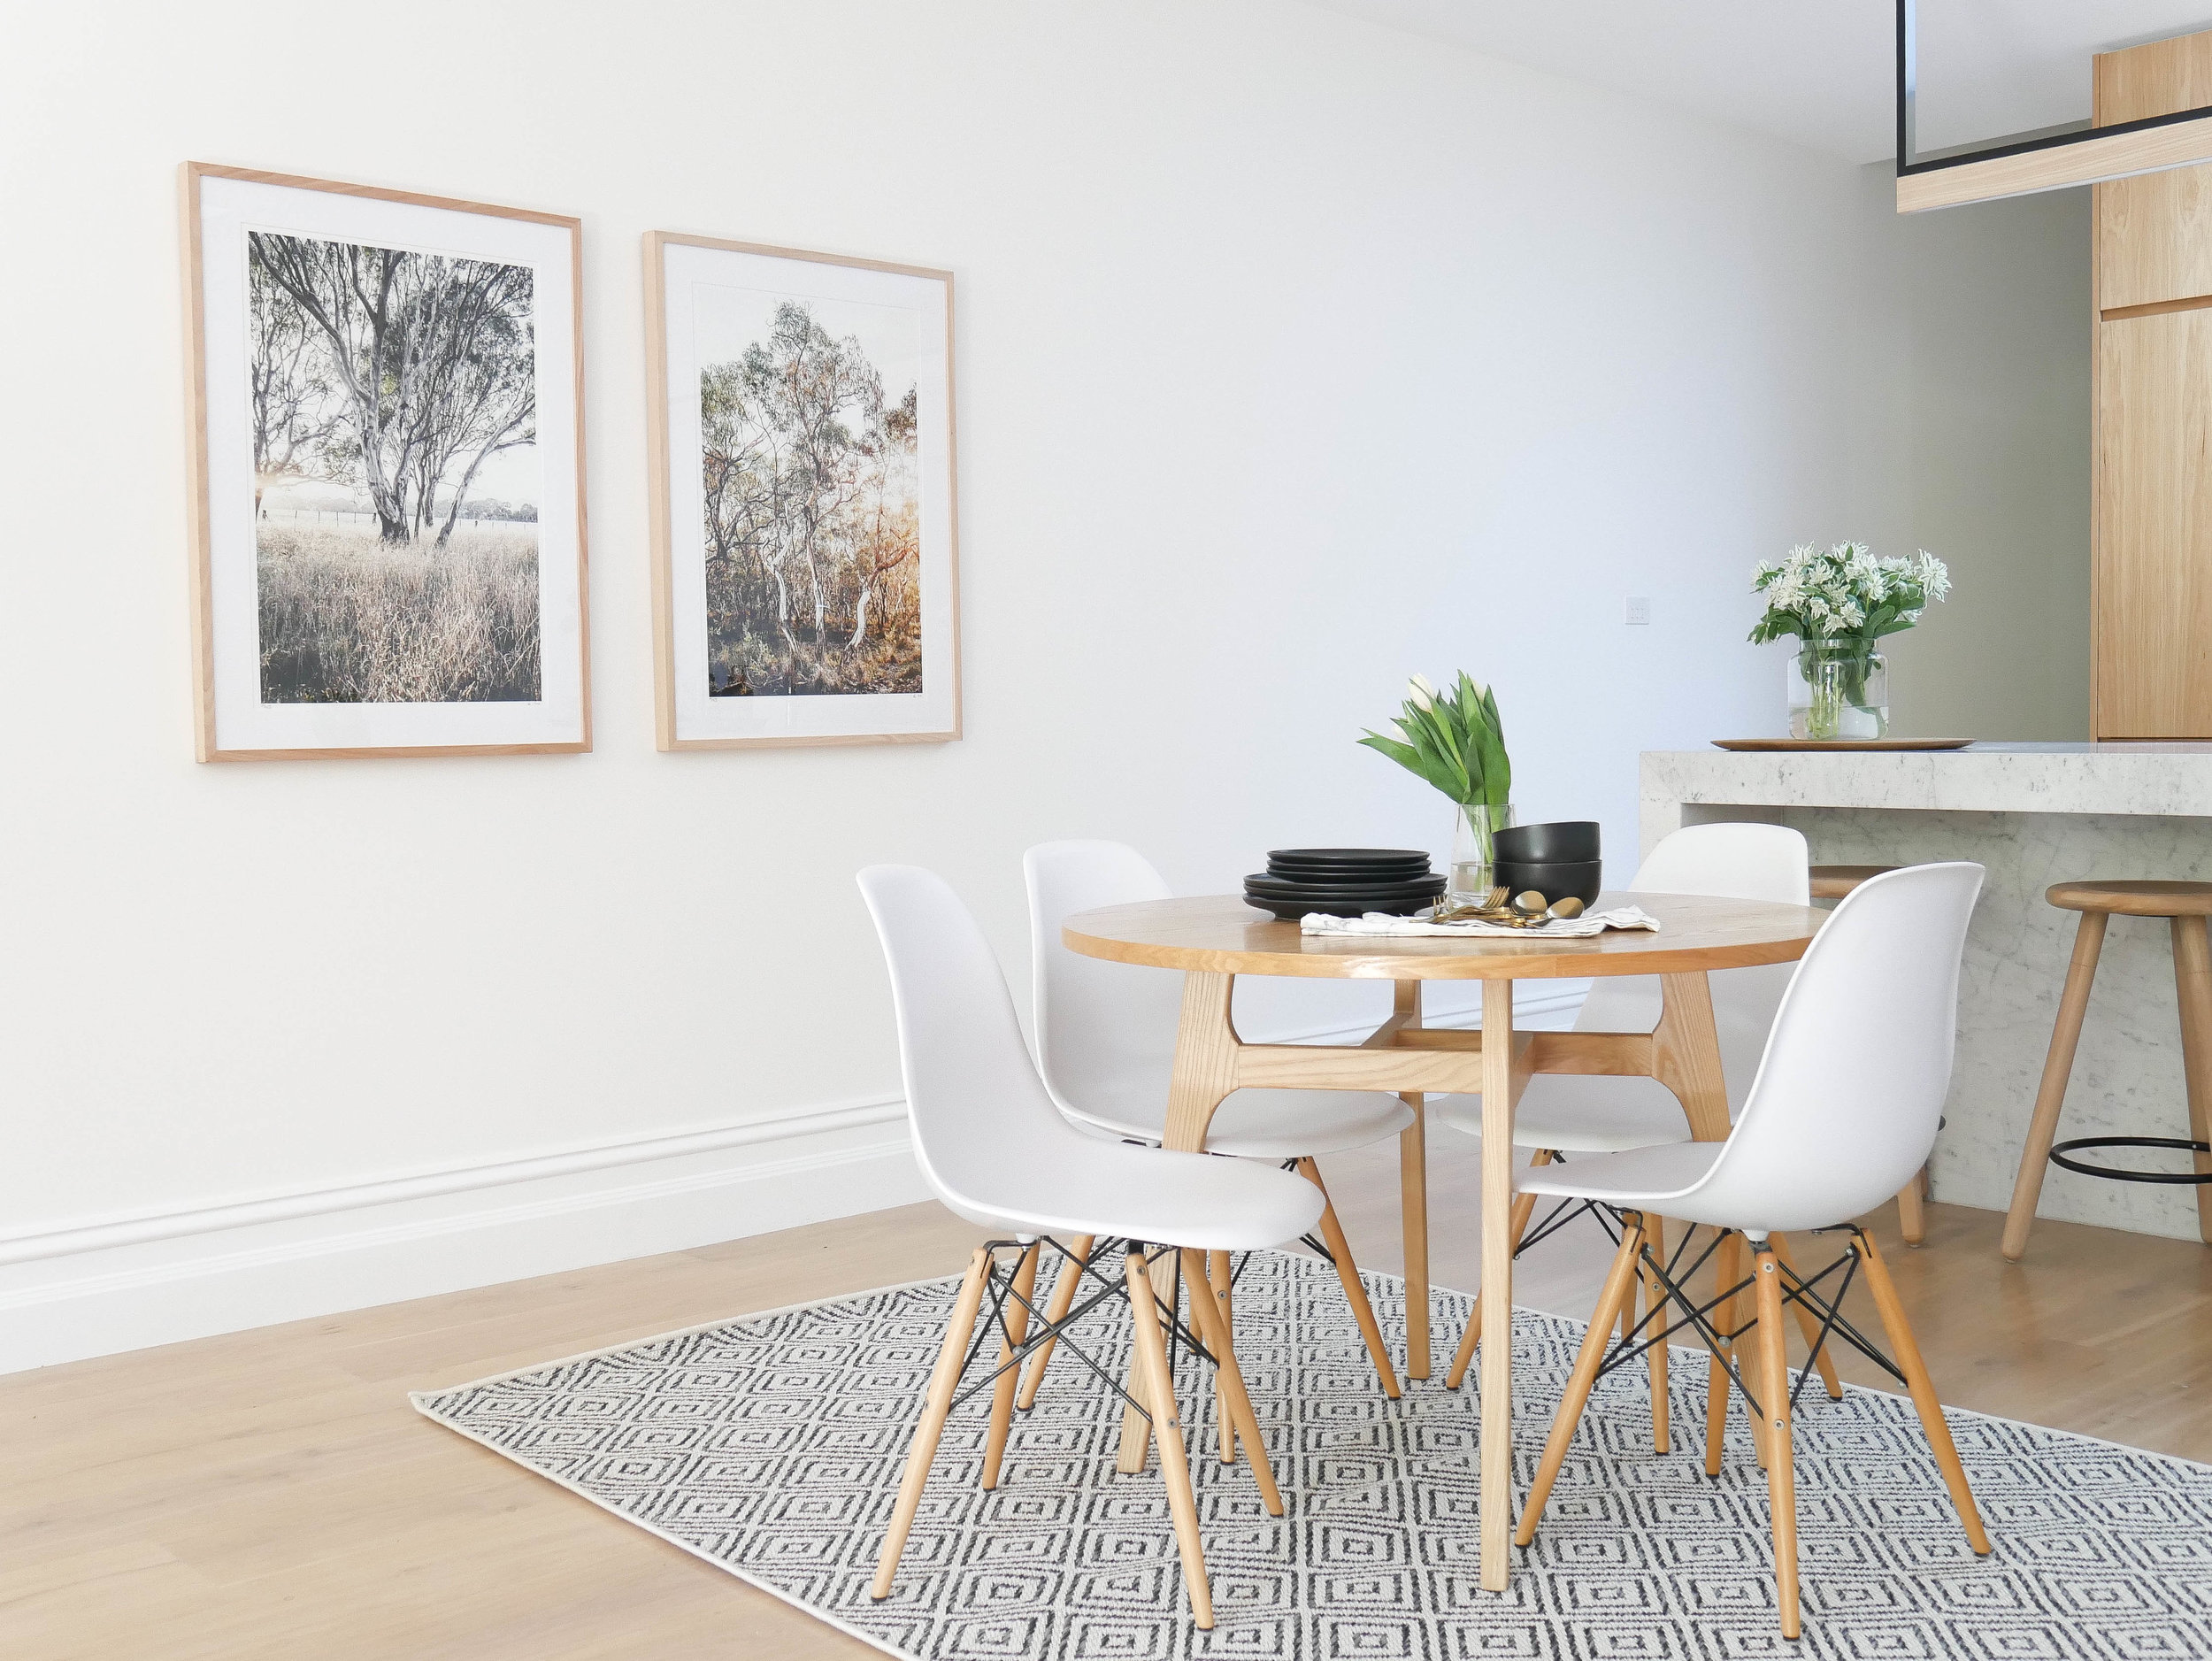 For my dining room I chose the  Layton Outdoor Rug  as it's easy to clean, it matches my decor and has the perfect pile and texture for a 'food area'.